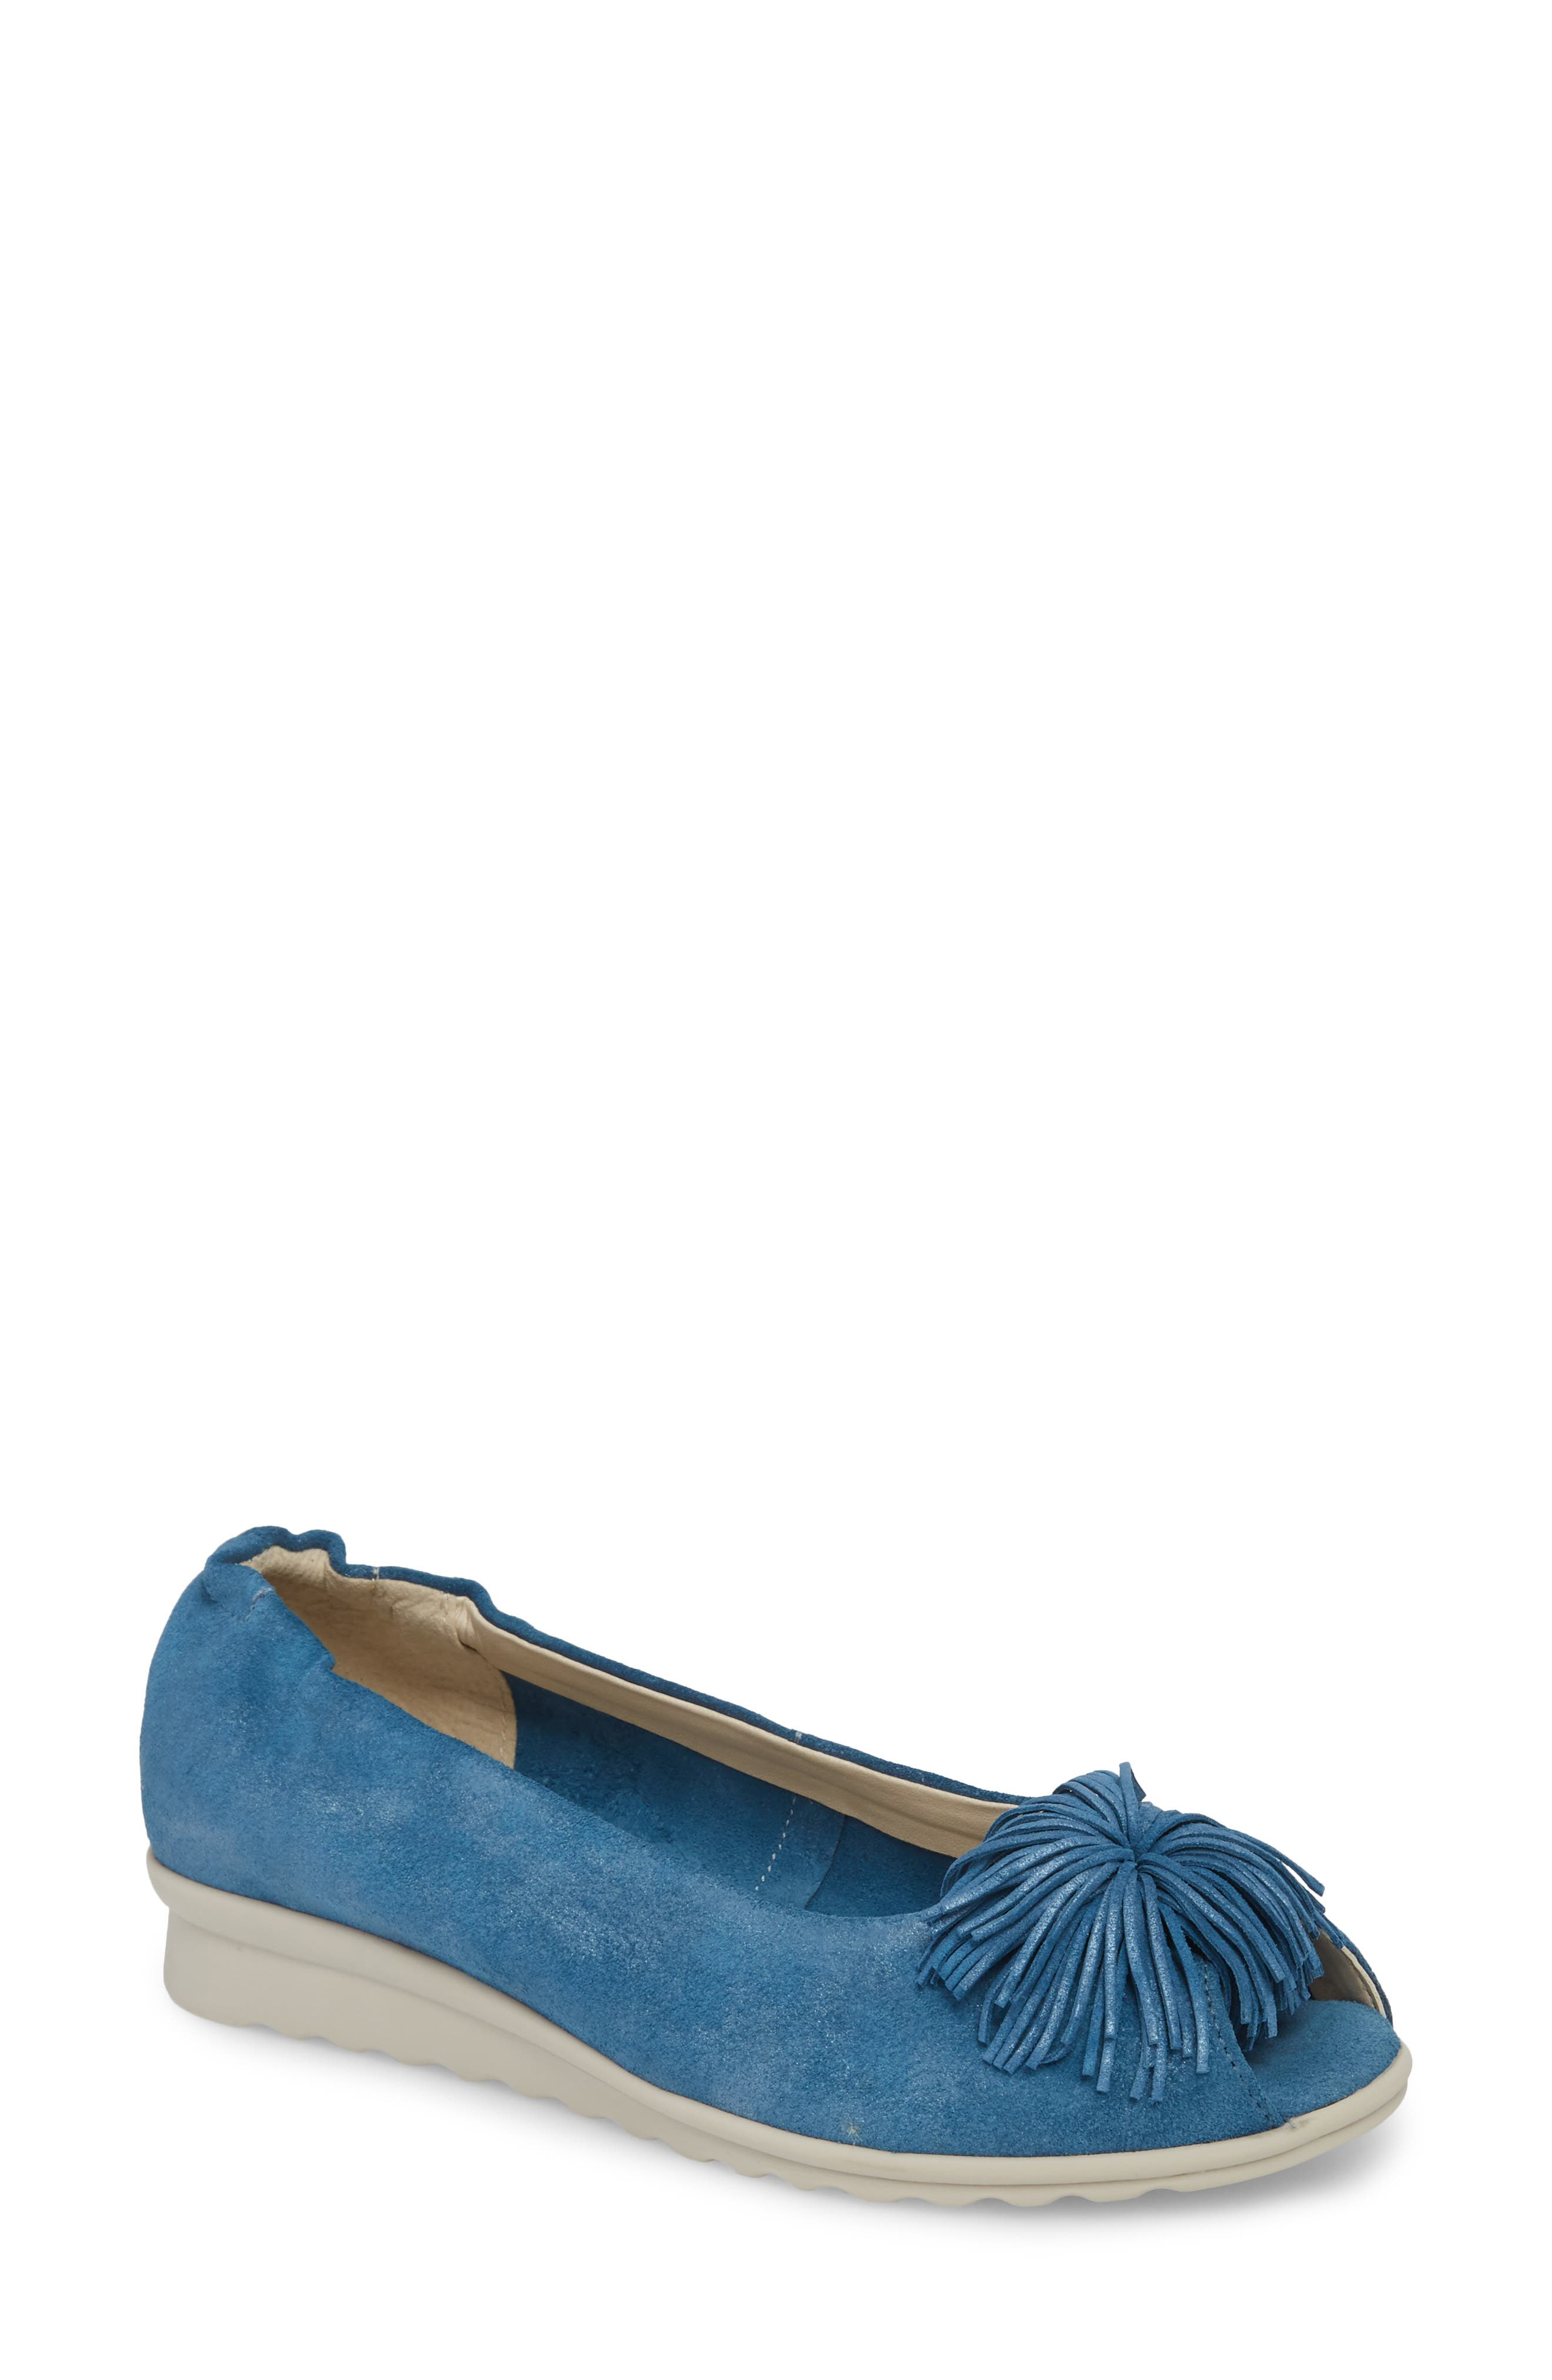 The Flexx Boco Loco Peeptoe Flat- Blue